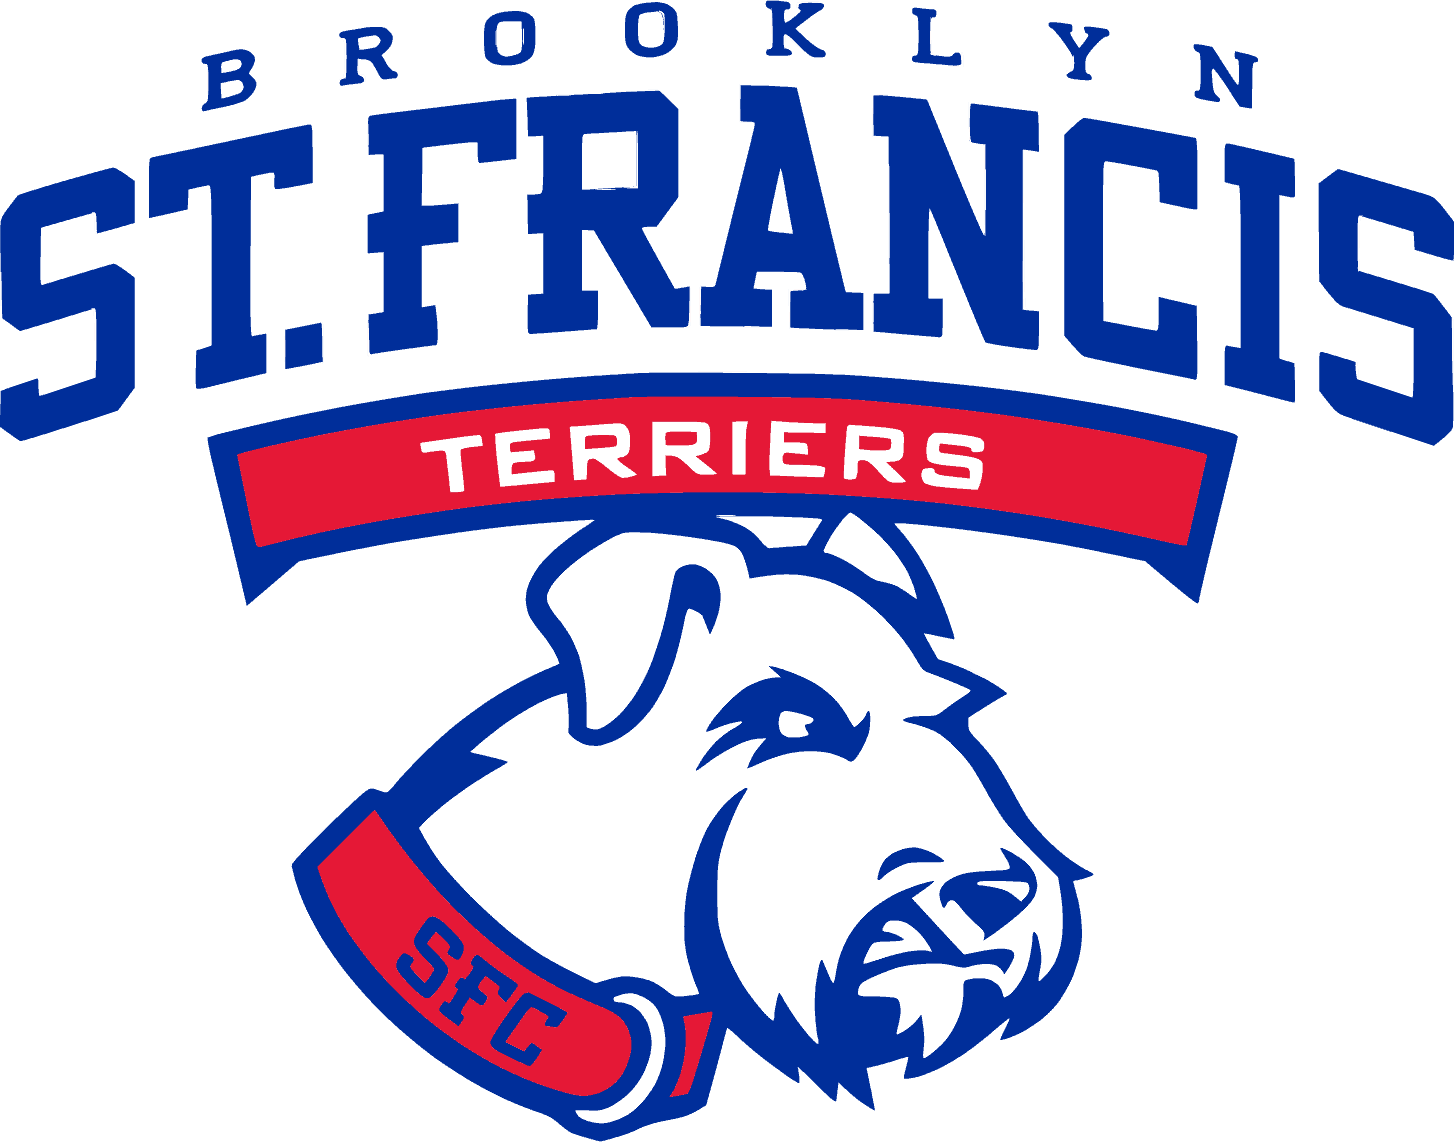 St. Francis Brooklyn Terriers Logo png